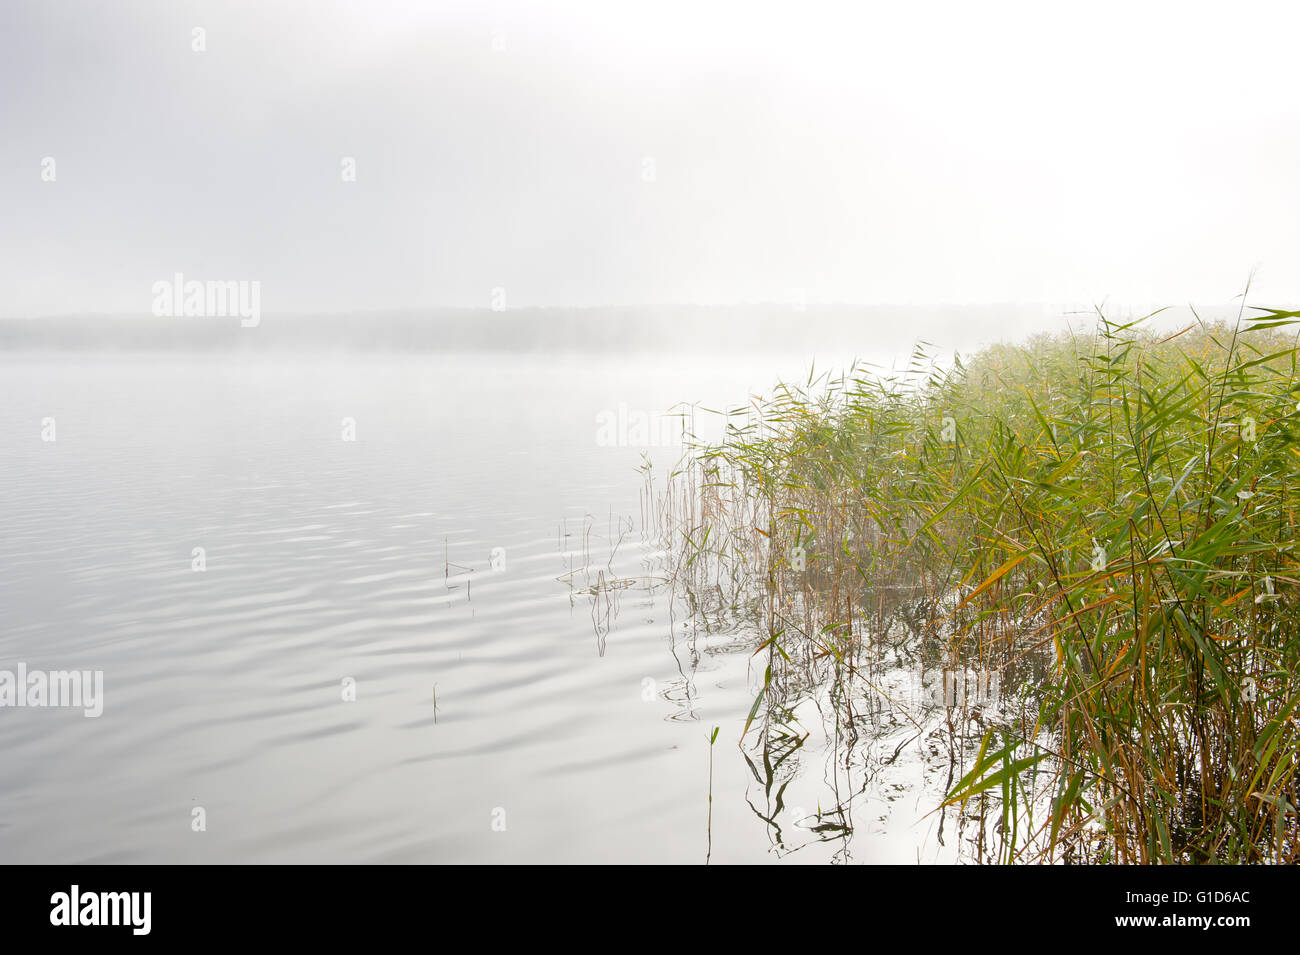 Morning haze at the lake in cold autumn weather, nature landscape in cloudy and foggy day in Poland, Europe. Reeds - Stock Image